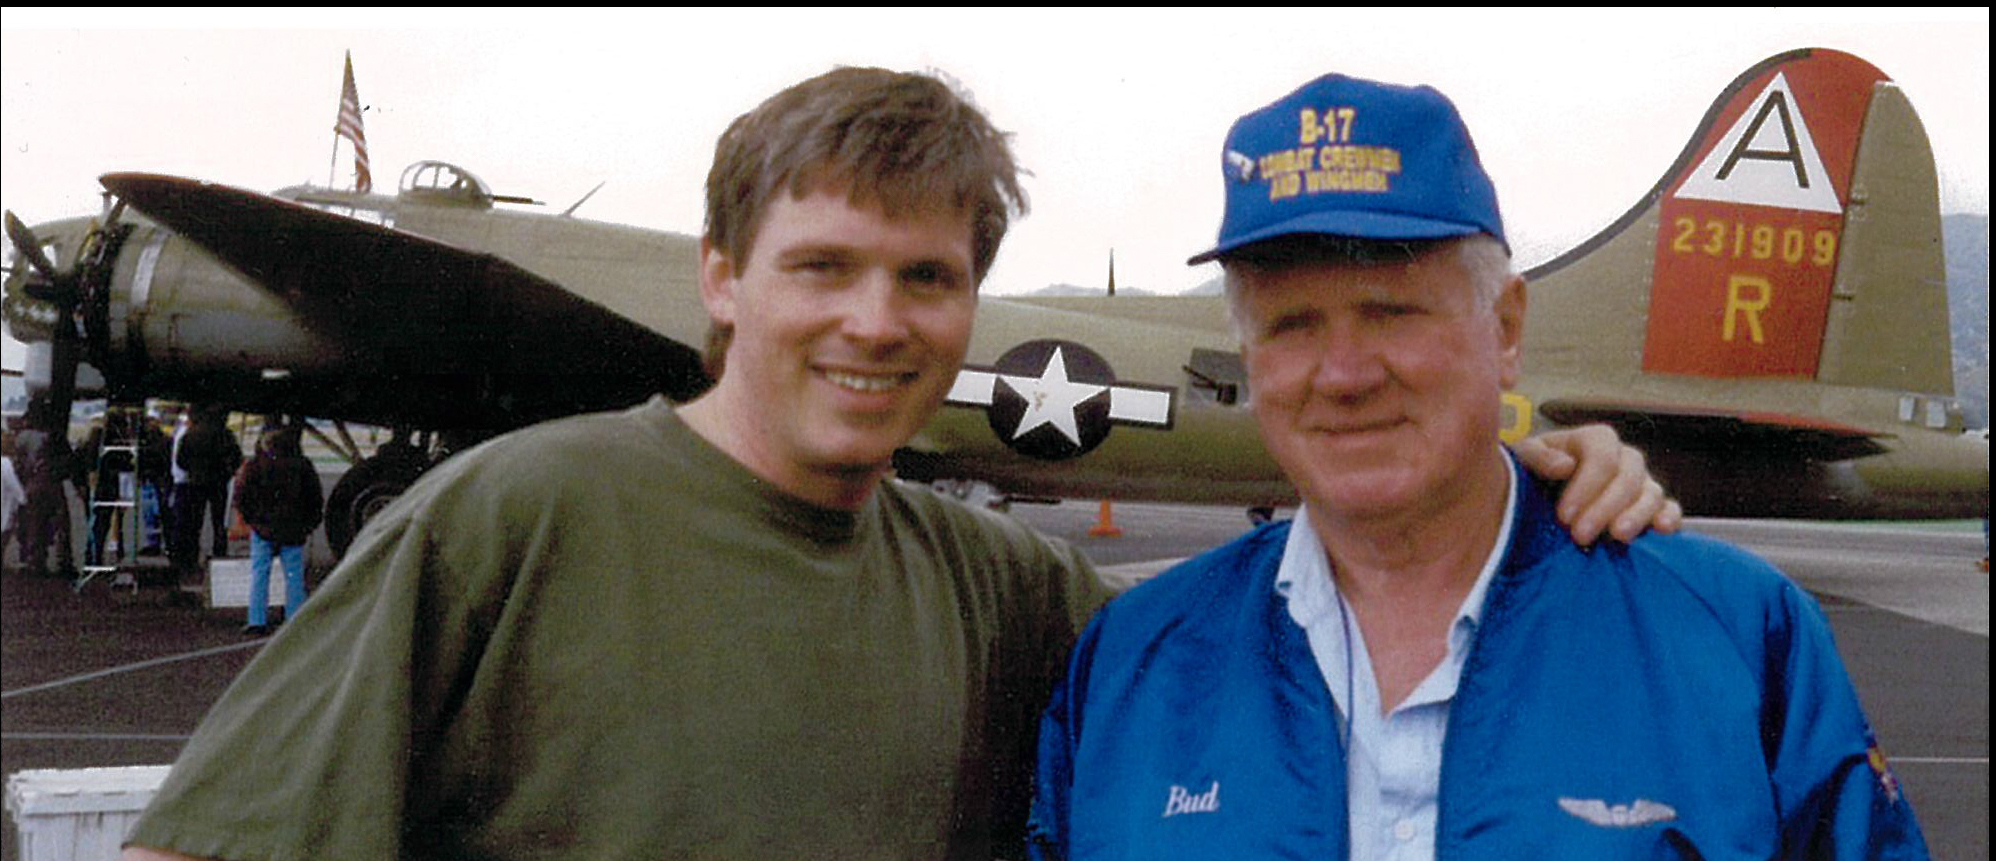 """Bud and Mark- May, 1998, Burbank, California   Mark Kirkland (left) and Bud Kingsbury (right) after meeting each other, by chance,   aboard the B-17 """"Nine O' Nine,"""" seen in the background."""